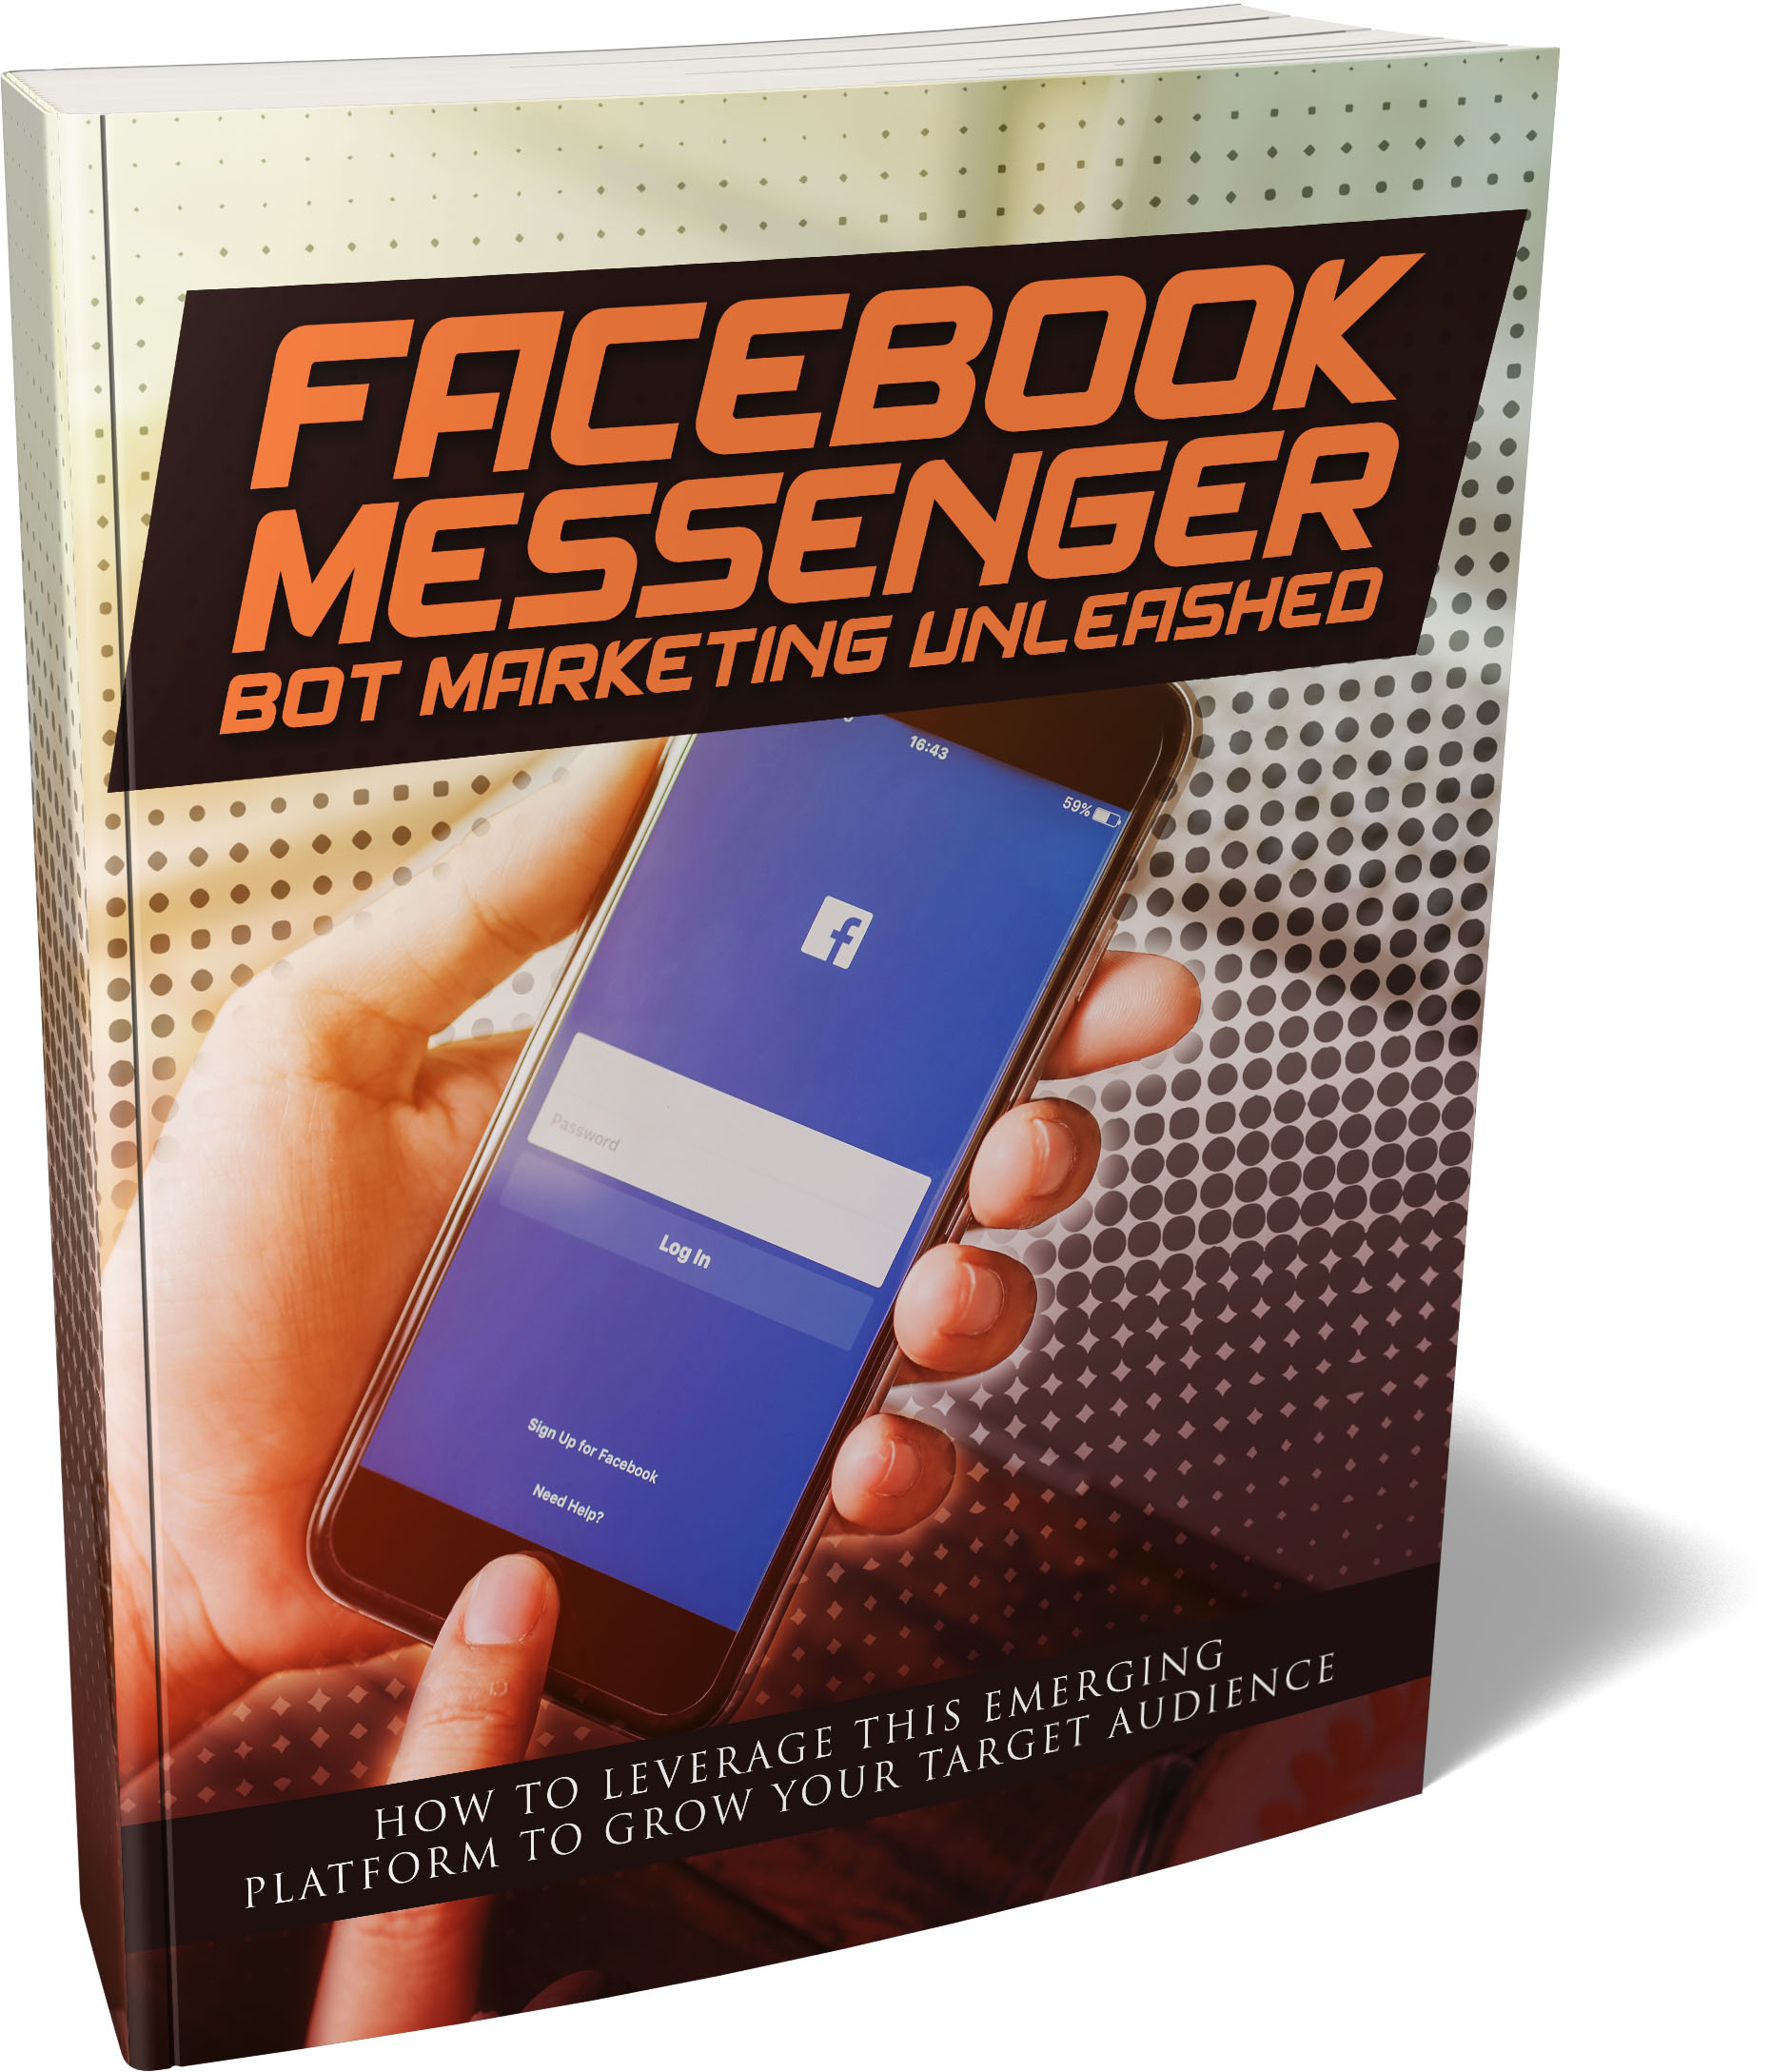 Facebook Messenger Bot Marketing Unleashed (How To Leverage This Emerging Platform To Grow Your Target Audience) Ebook's Ebook Image